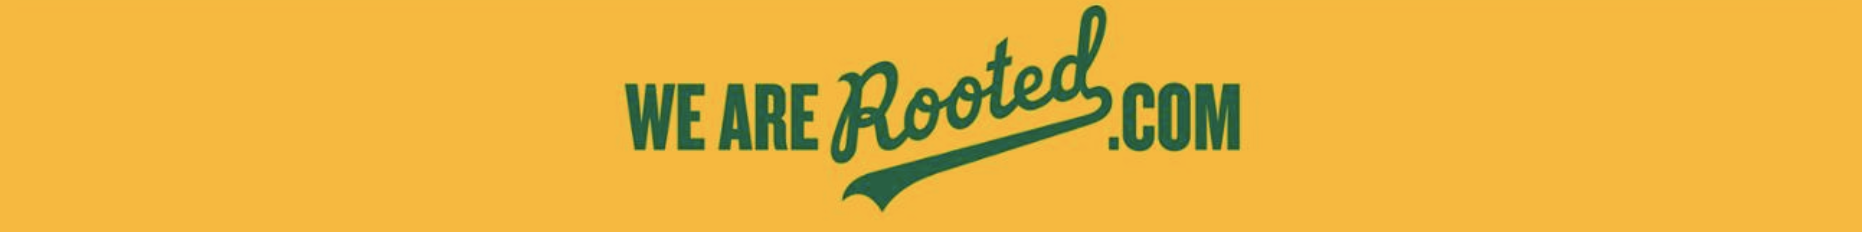 We are rooted logo